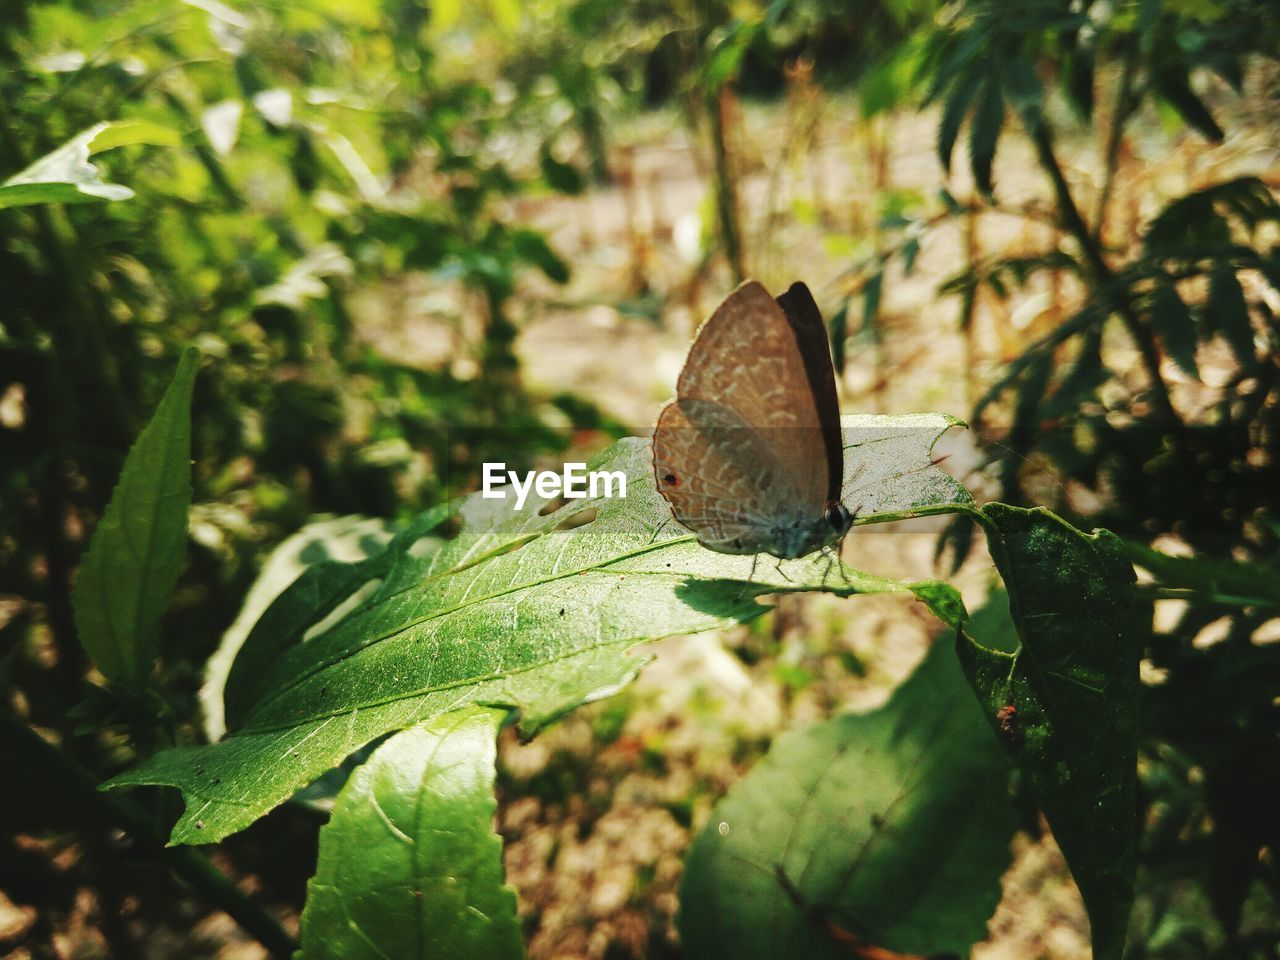 leaf, one animal, green color, animal themes, nature, insect, plant, animals in the wild, day, close-up, no people, outdoors, growth, focus on foreground, animal wildlife, butterfly - insect, beauty in nature, freshness